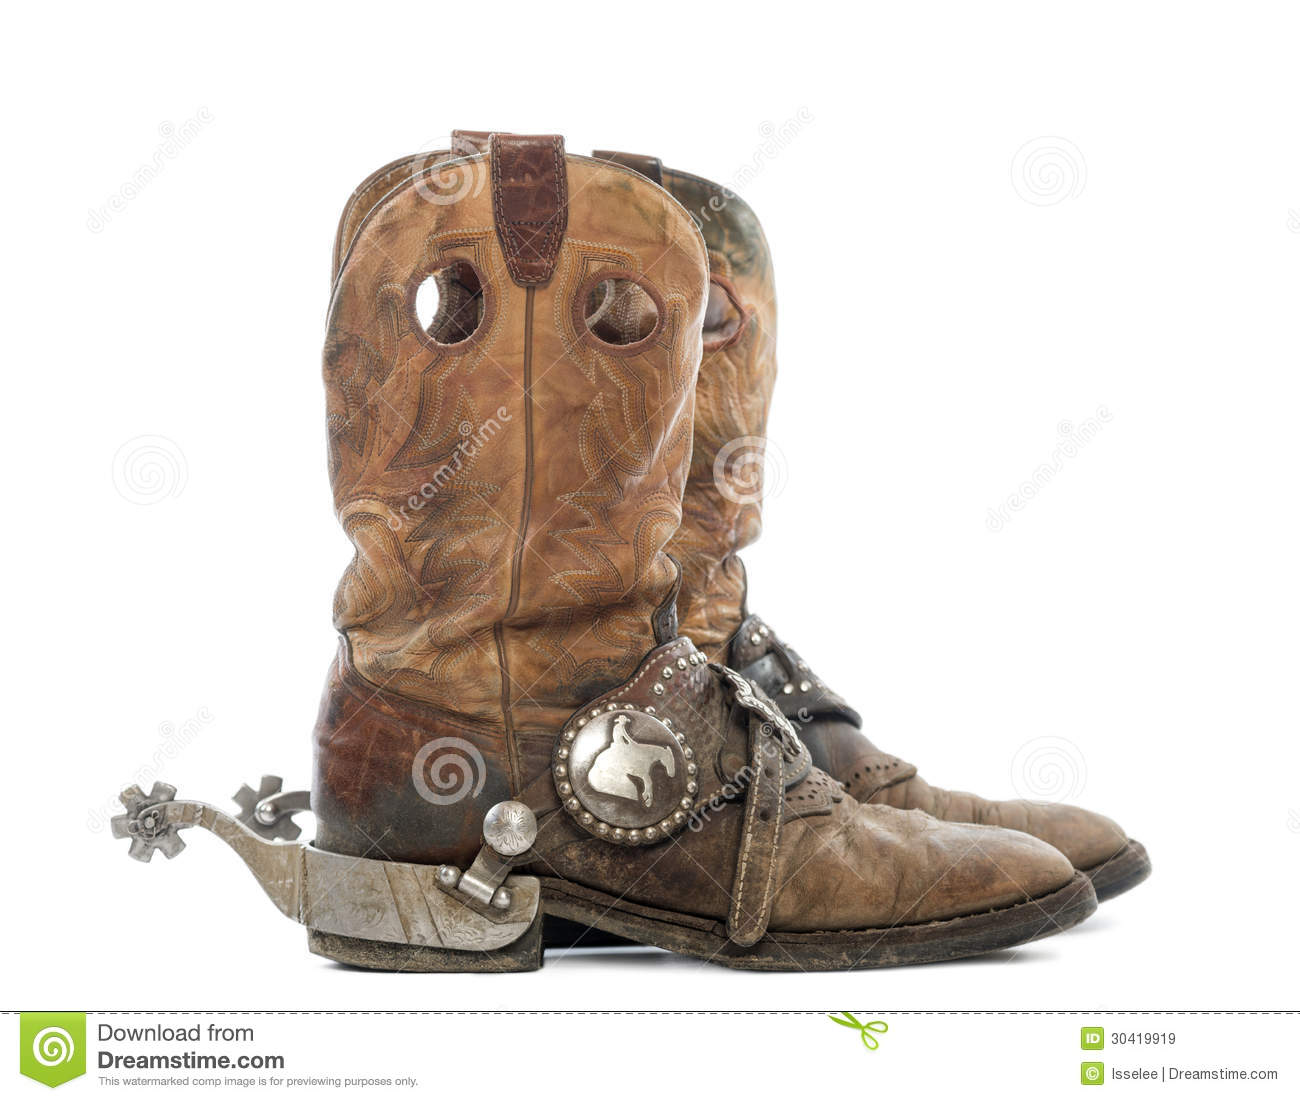 Cowboy Boot Spurs 3MO67TKe